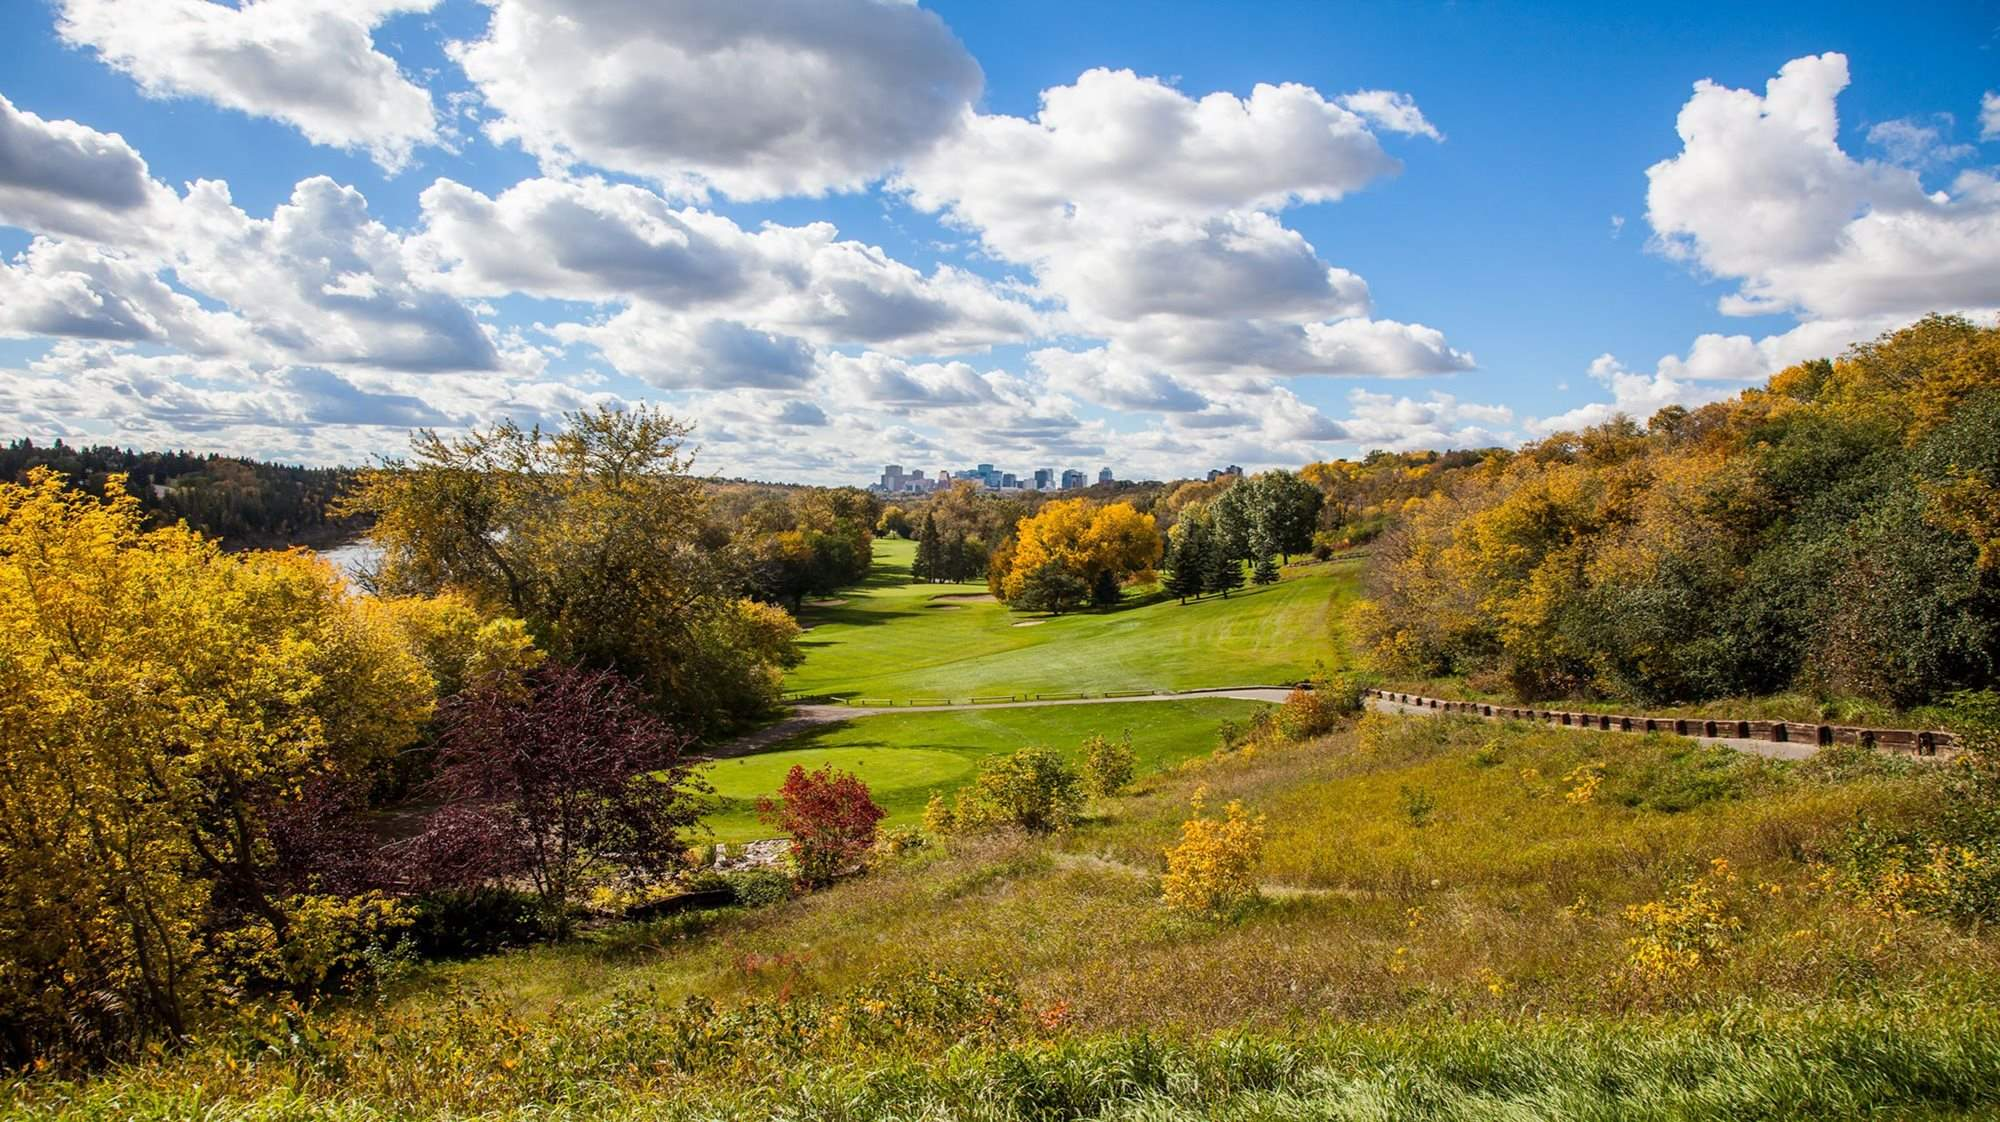 Highlands Golf Club golf course